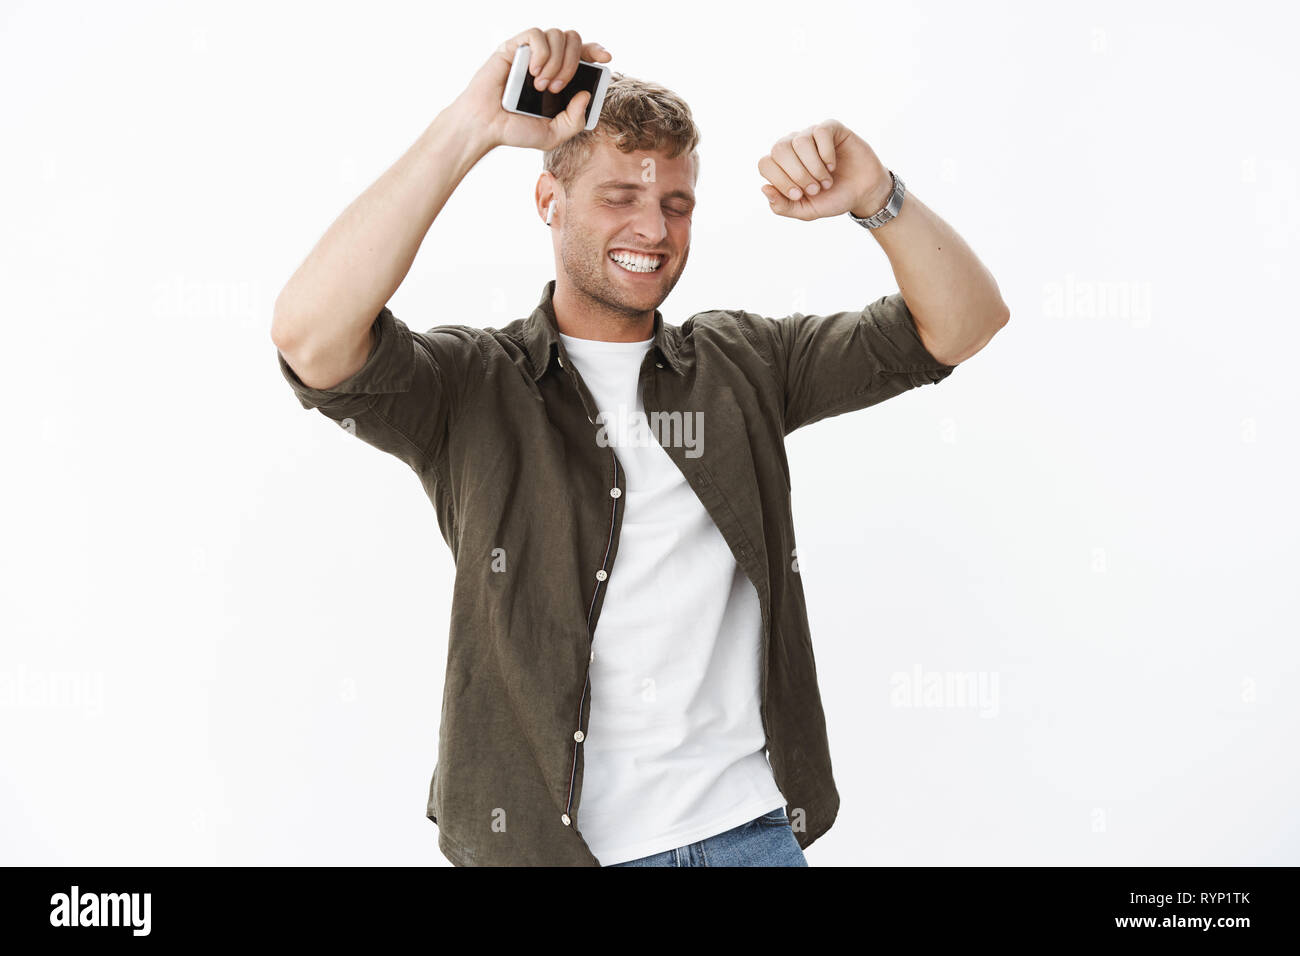 Man feeling happy and awesome dancing from joy with closed eyes and satisfied smile lifting hands holding smartphone wearing wireless earbuds - Stock Image